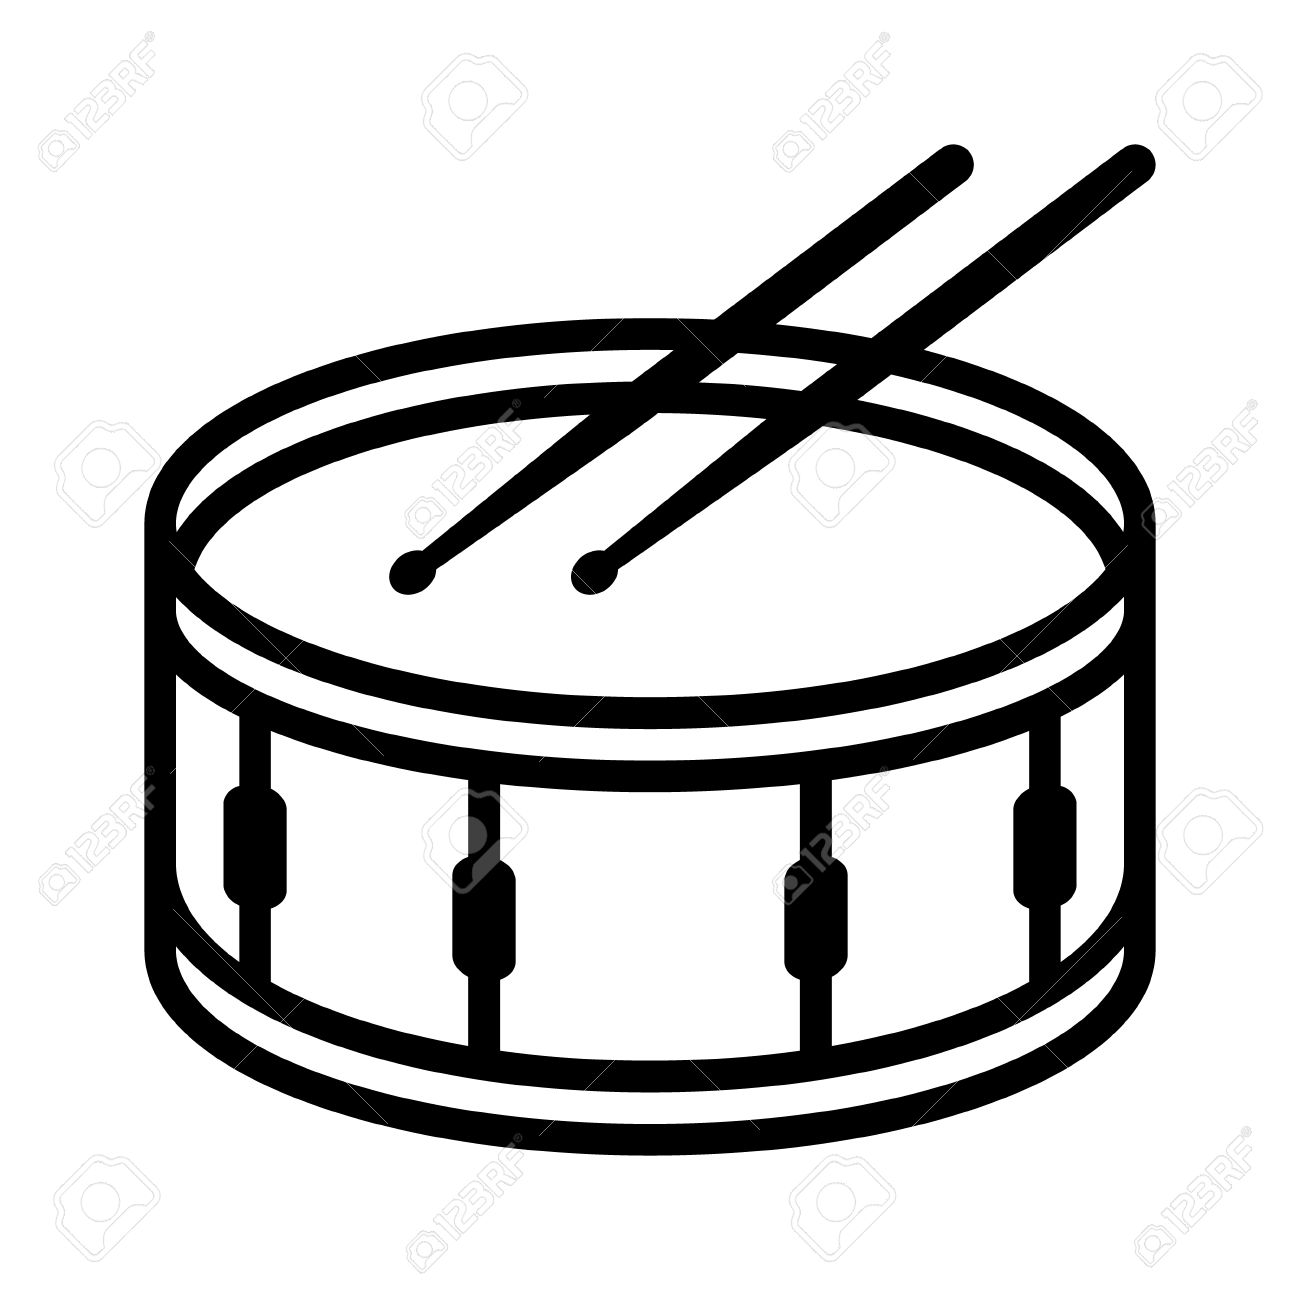 191 Snare Drum free clipart.